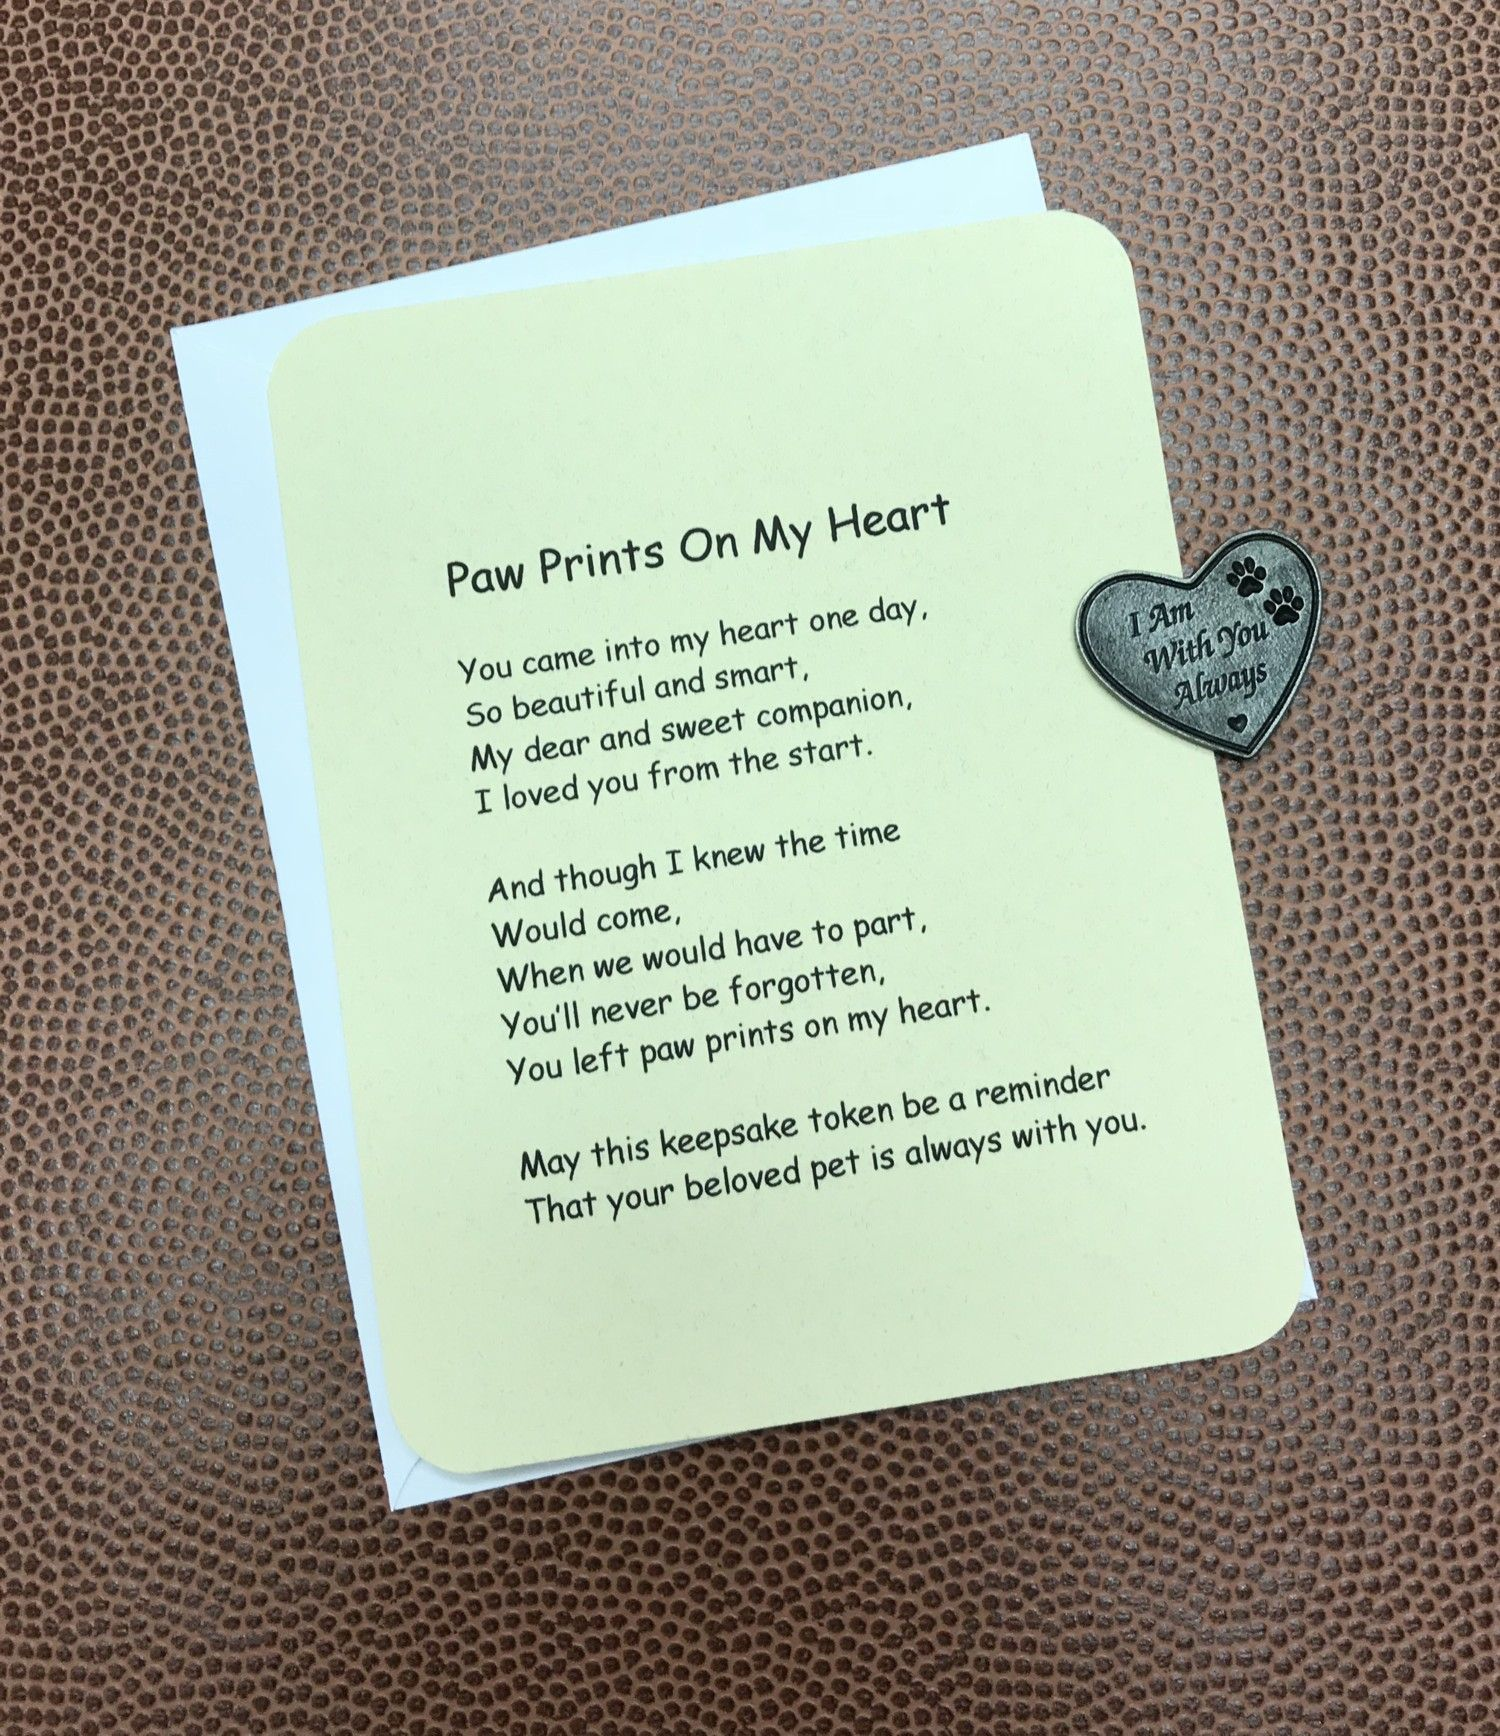 Paw Prints On My Heart Poem & Token Set This heart shaped token and ...